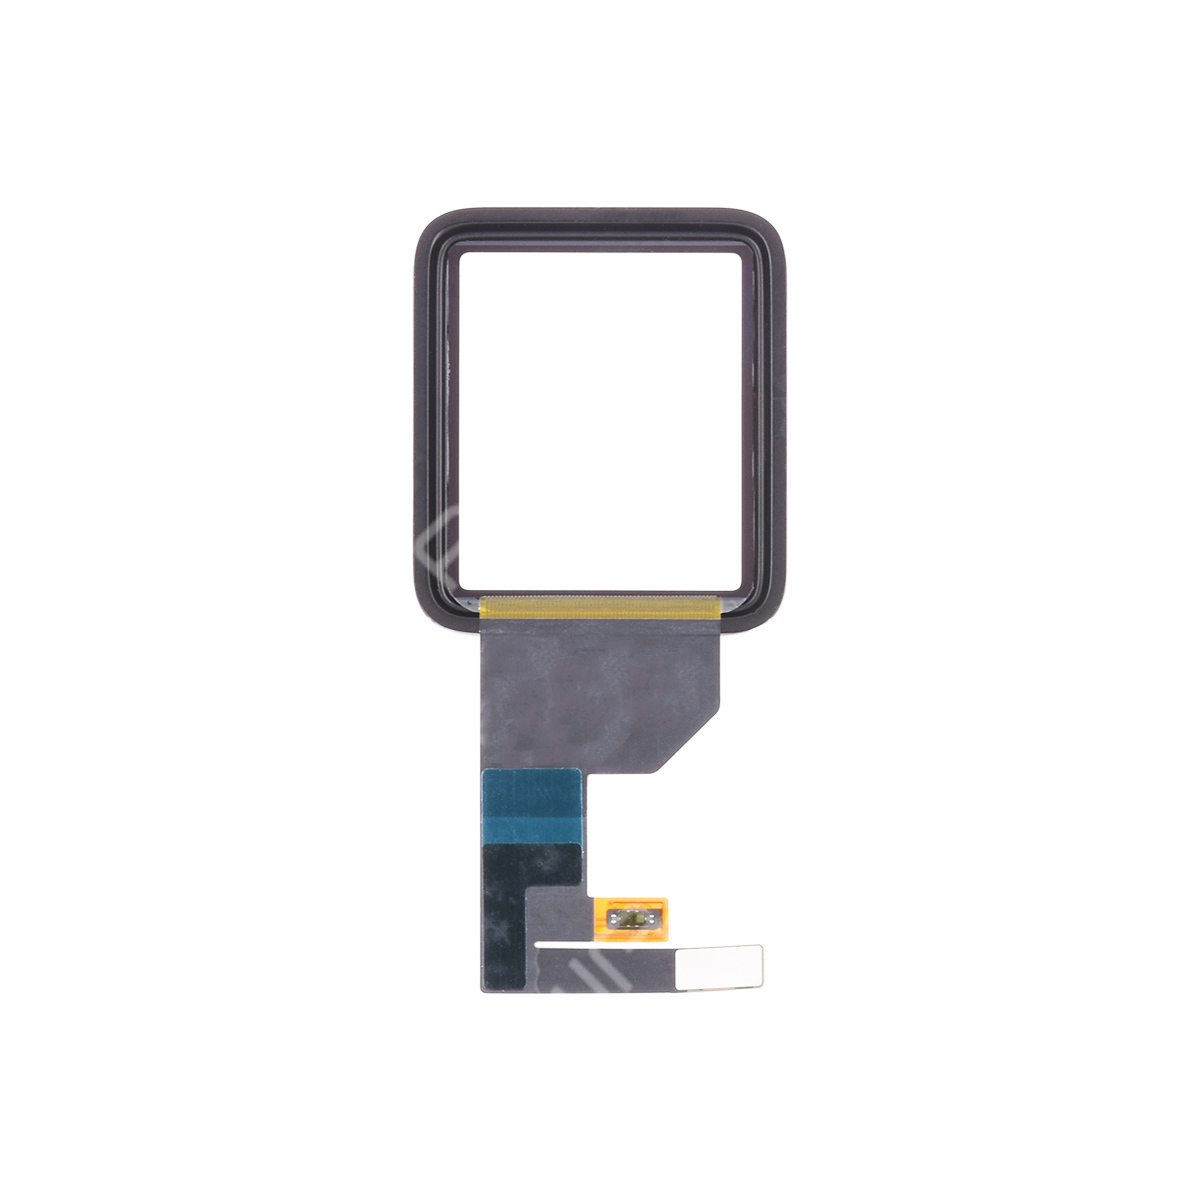 Replacement For Apple Watch Series 1 38mm/42mm Digitizer Touch Screen